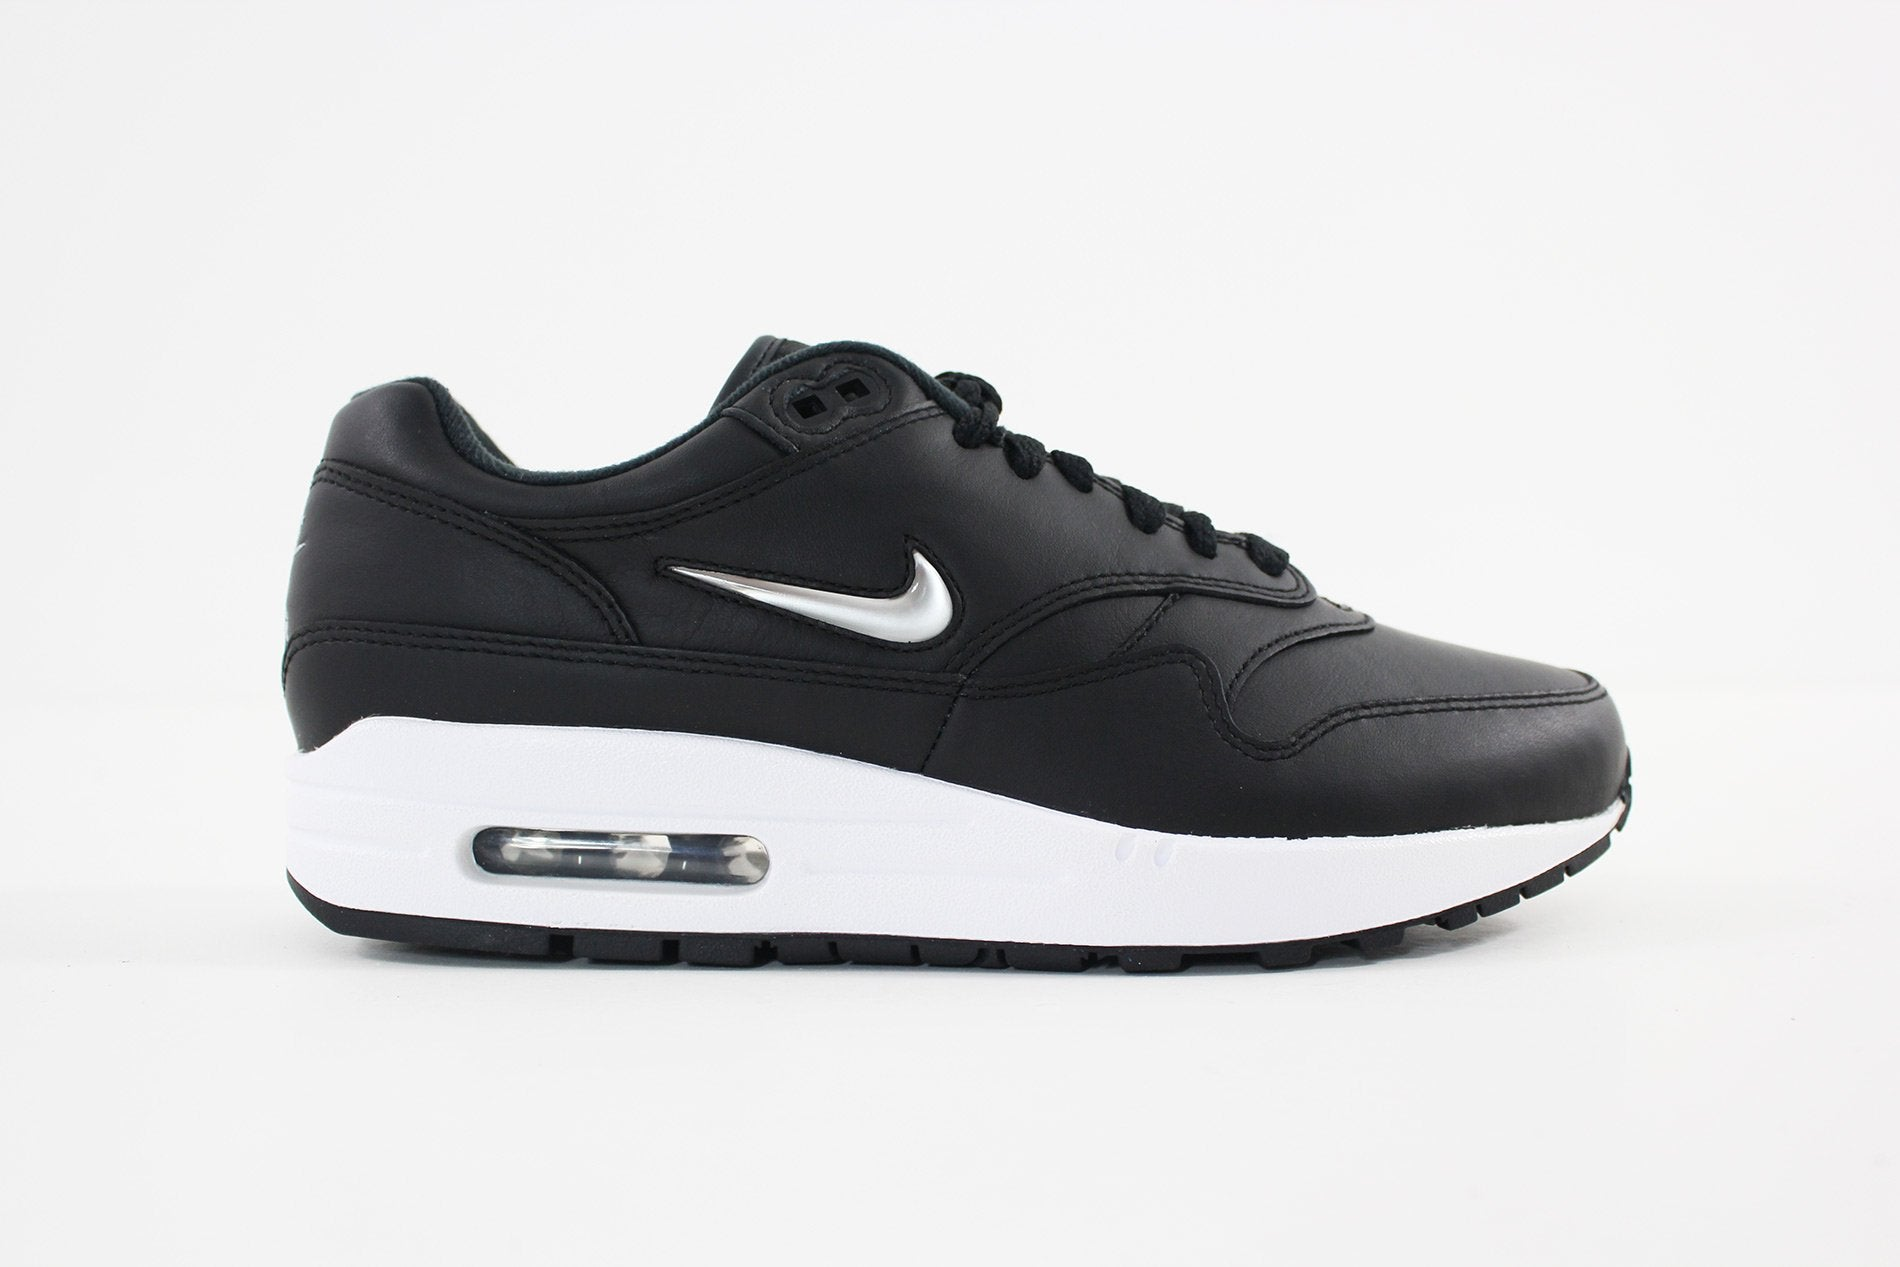 Nike- Men's Air Max 1 Premium SC Shoe (BLACK/METALLIC SILVER-WHITE) 918354-001